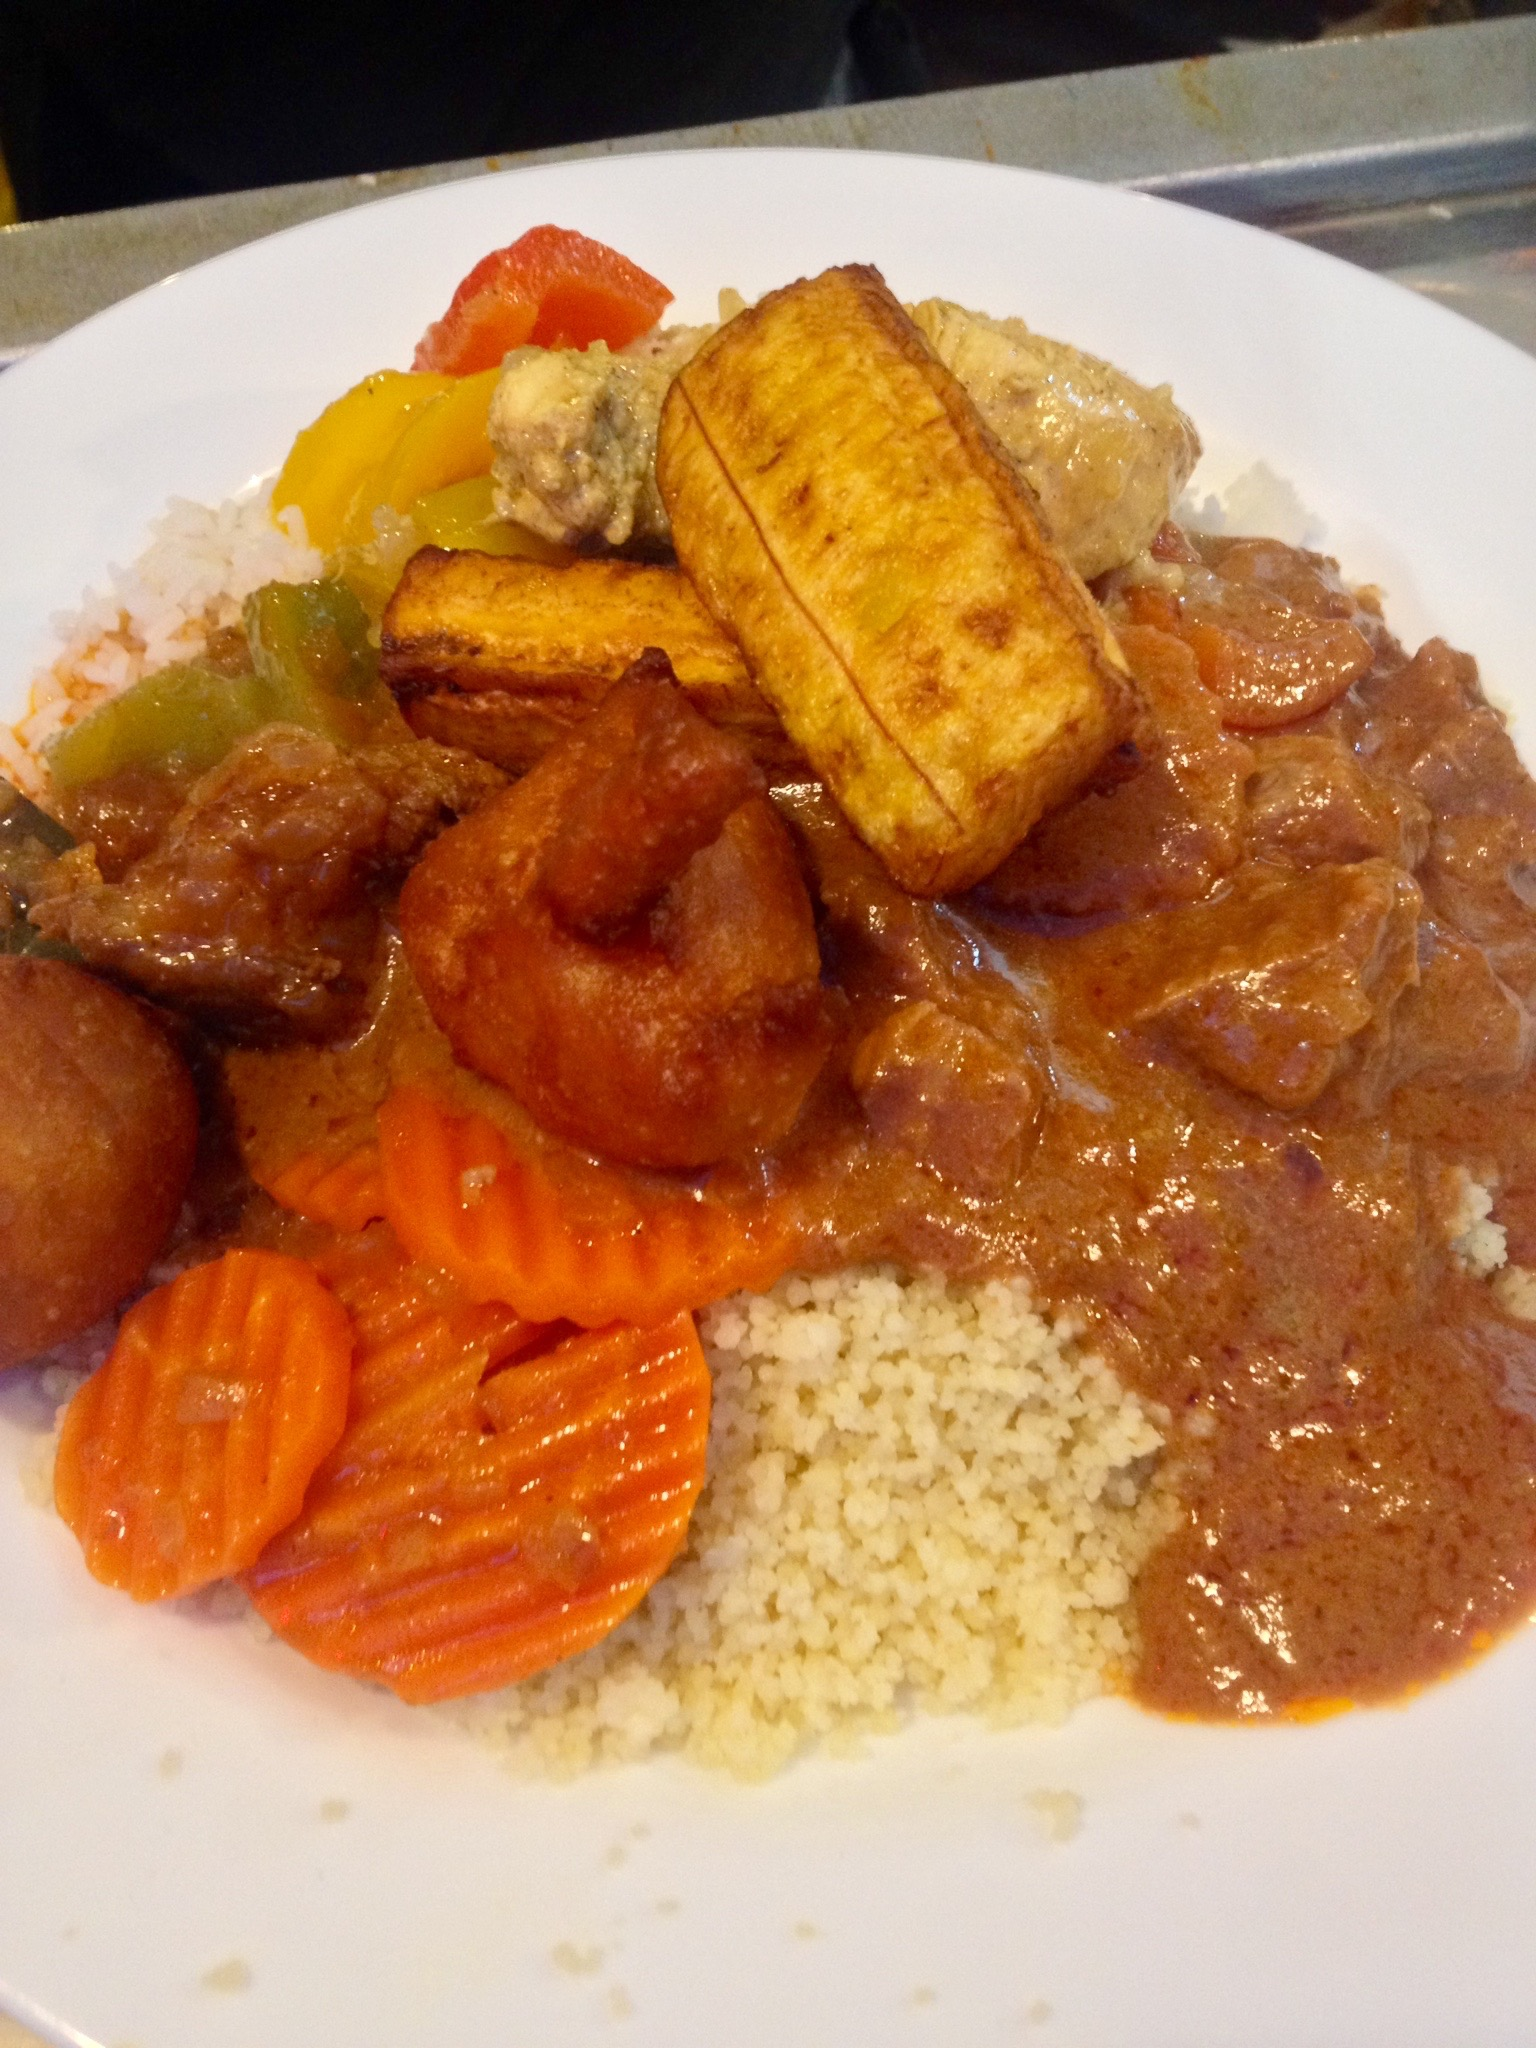 Mixed plate of beef, chicken, and lamb with vegetables on rice and couscous